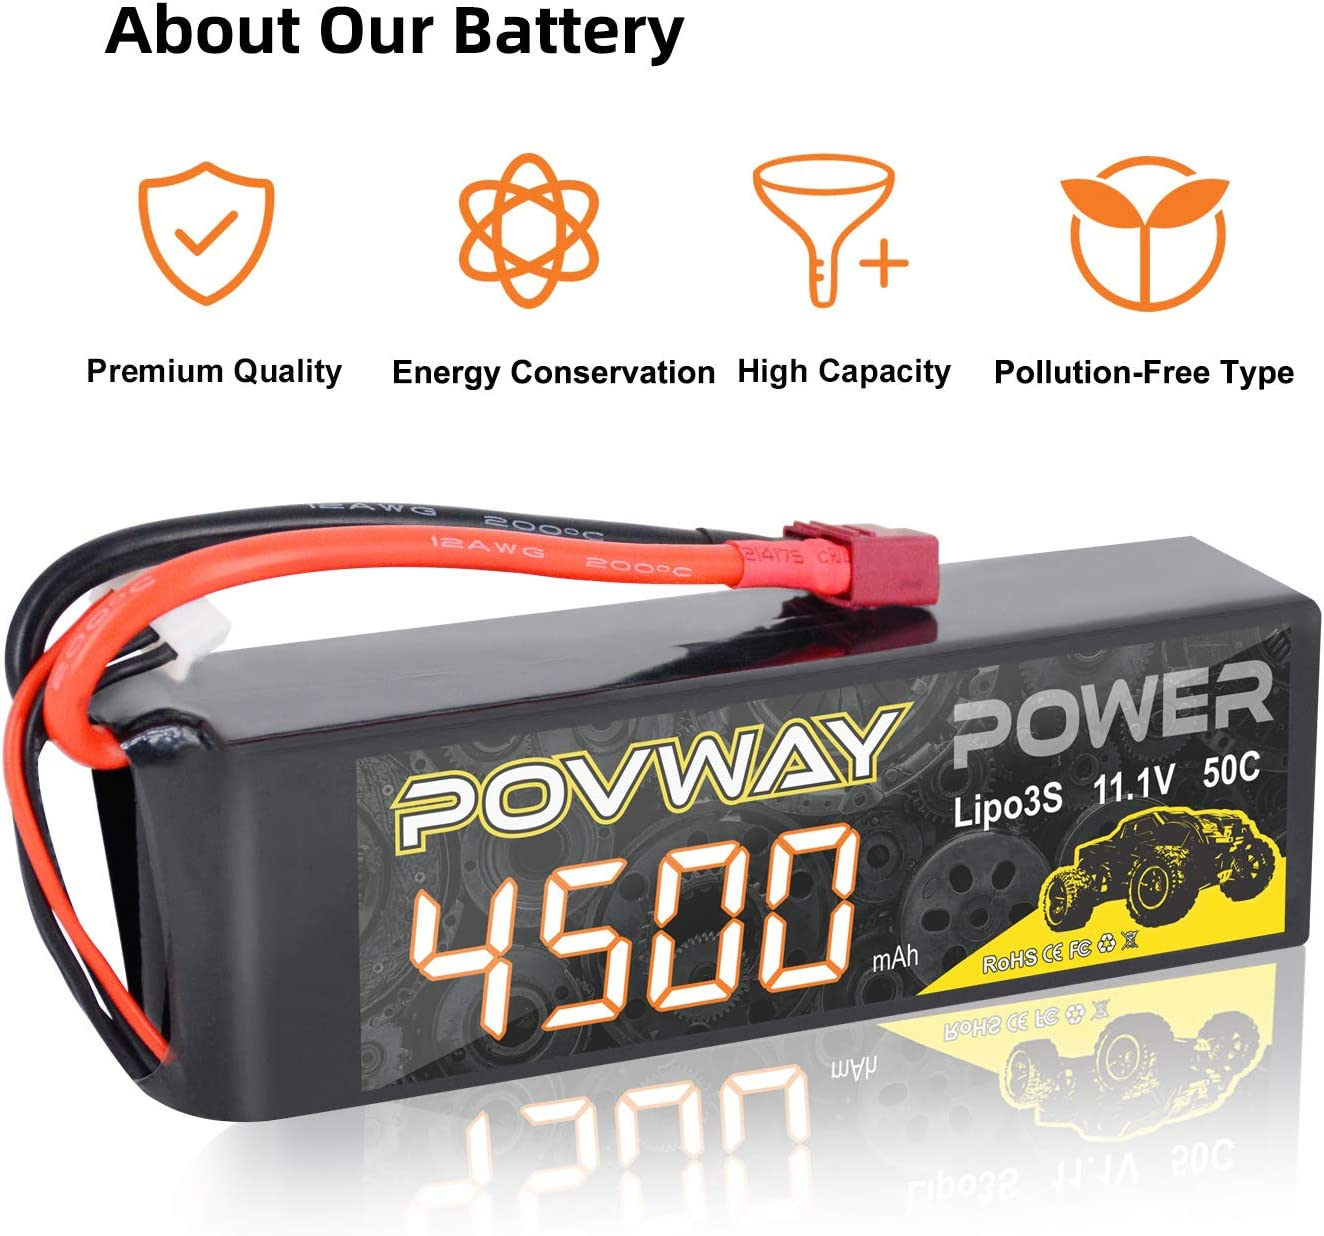 RC Helicopter RC Truck RC Boat 3S 50C LiPo Battery POVWAY 11.1V 4500mAh with T Plug Compatible RC Cars 4500mAh 3S-1pack RC Airplane